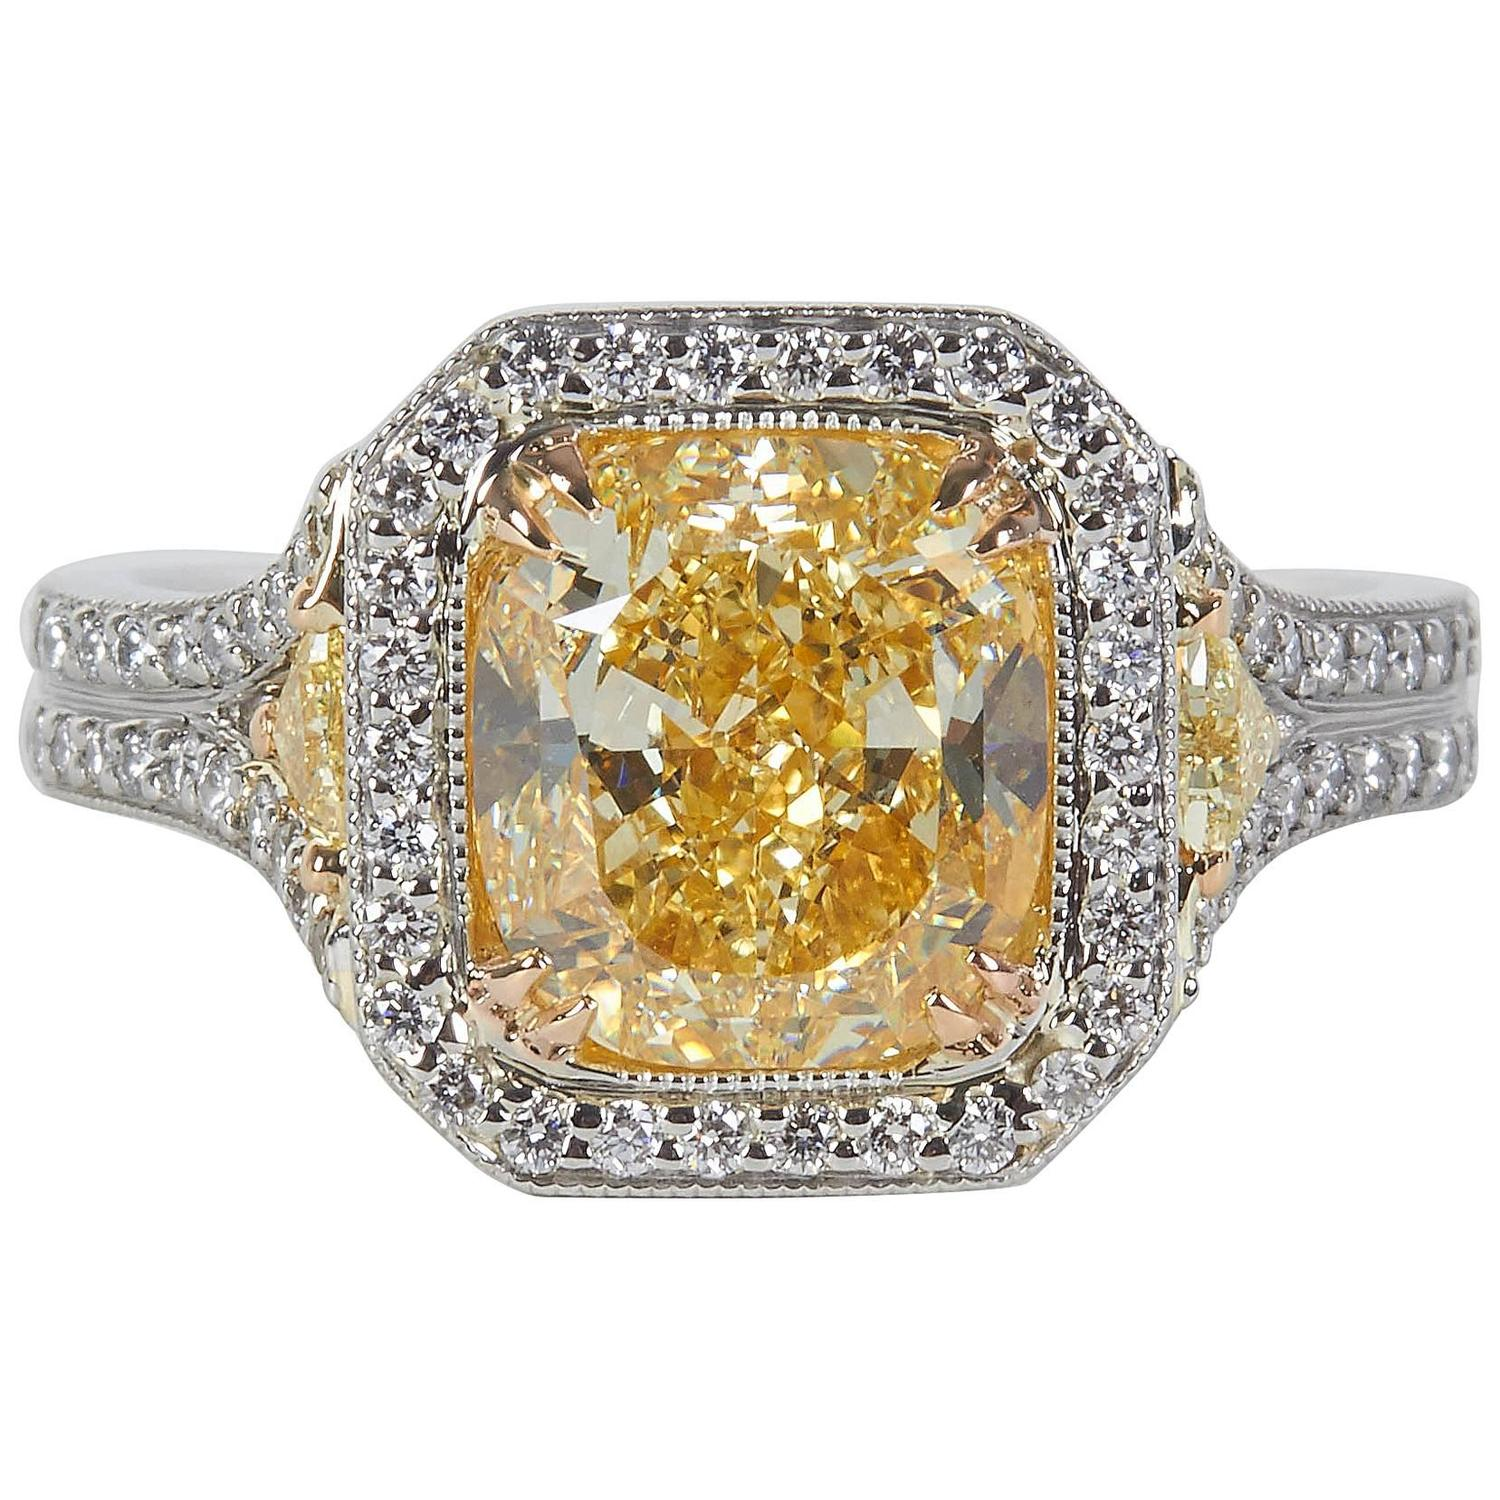 4 Carat Internally Flawless GIA Cert Yellow Diamond Platinum Ring For Sale at